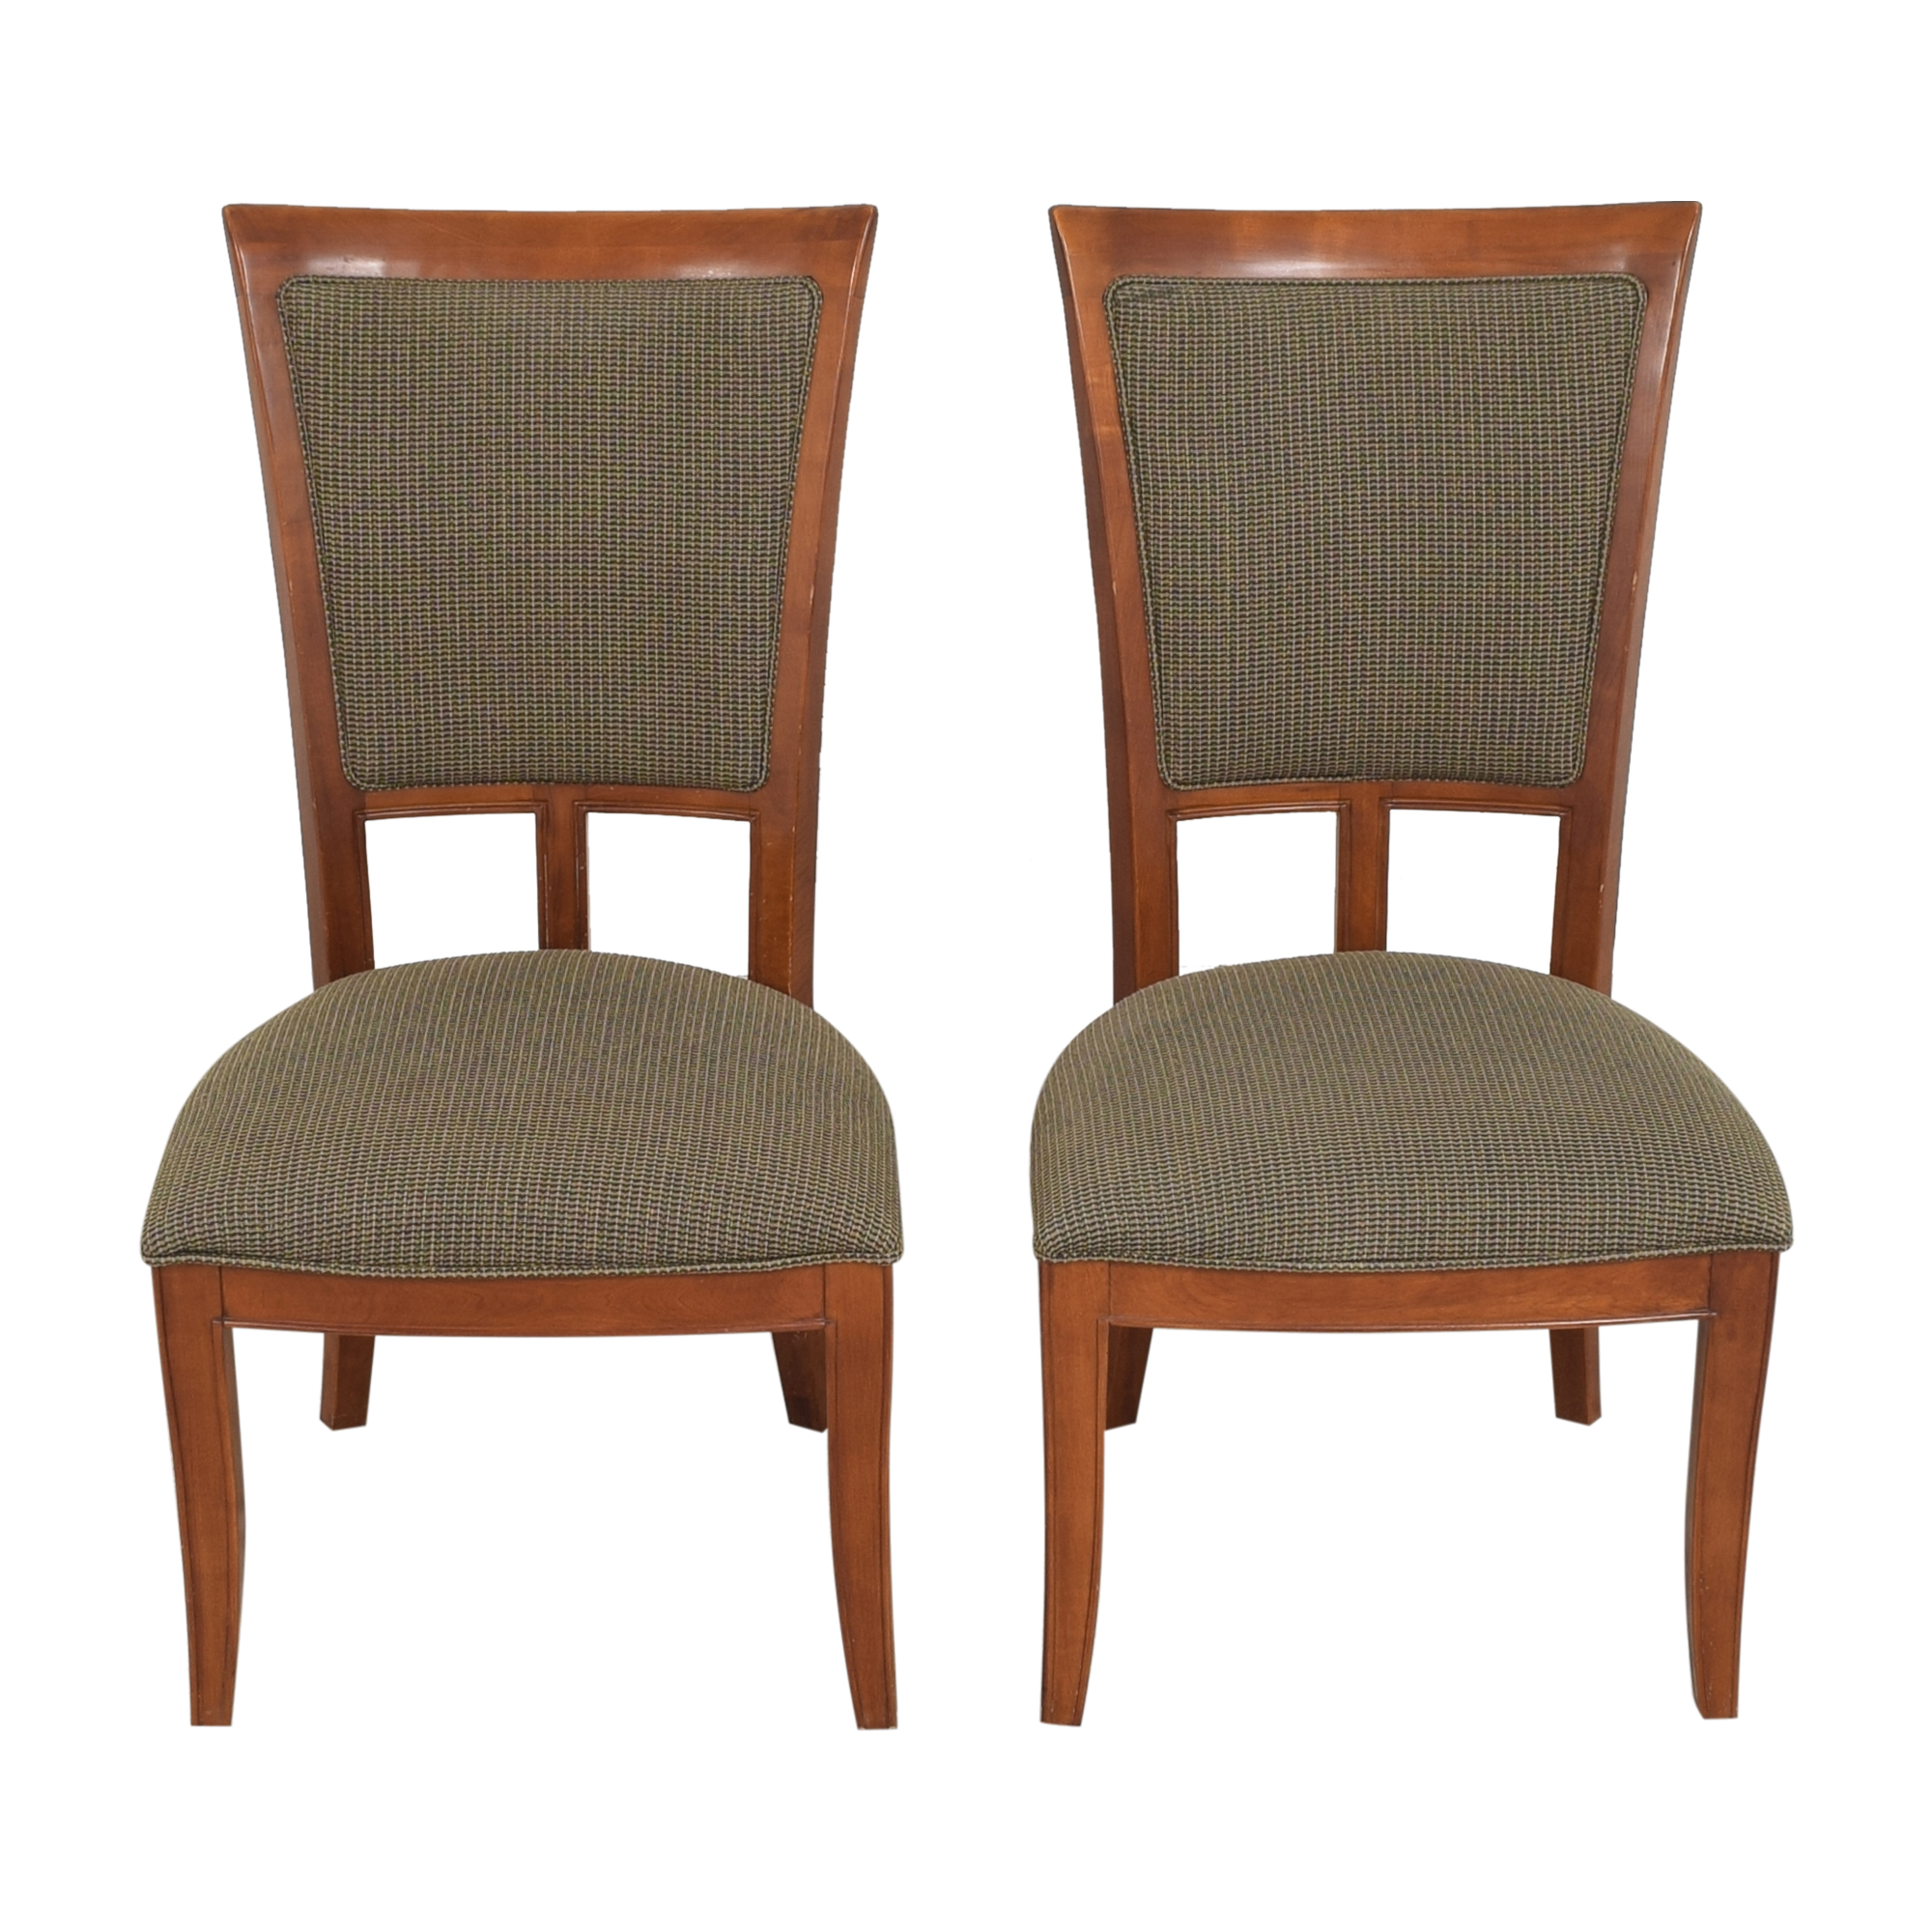 Stanley Furniture Stanley Furniture Upholstered Dining Chairs